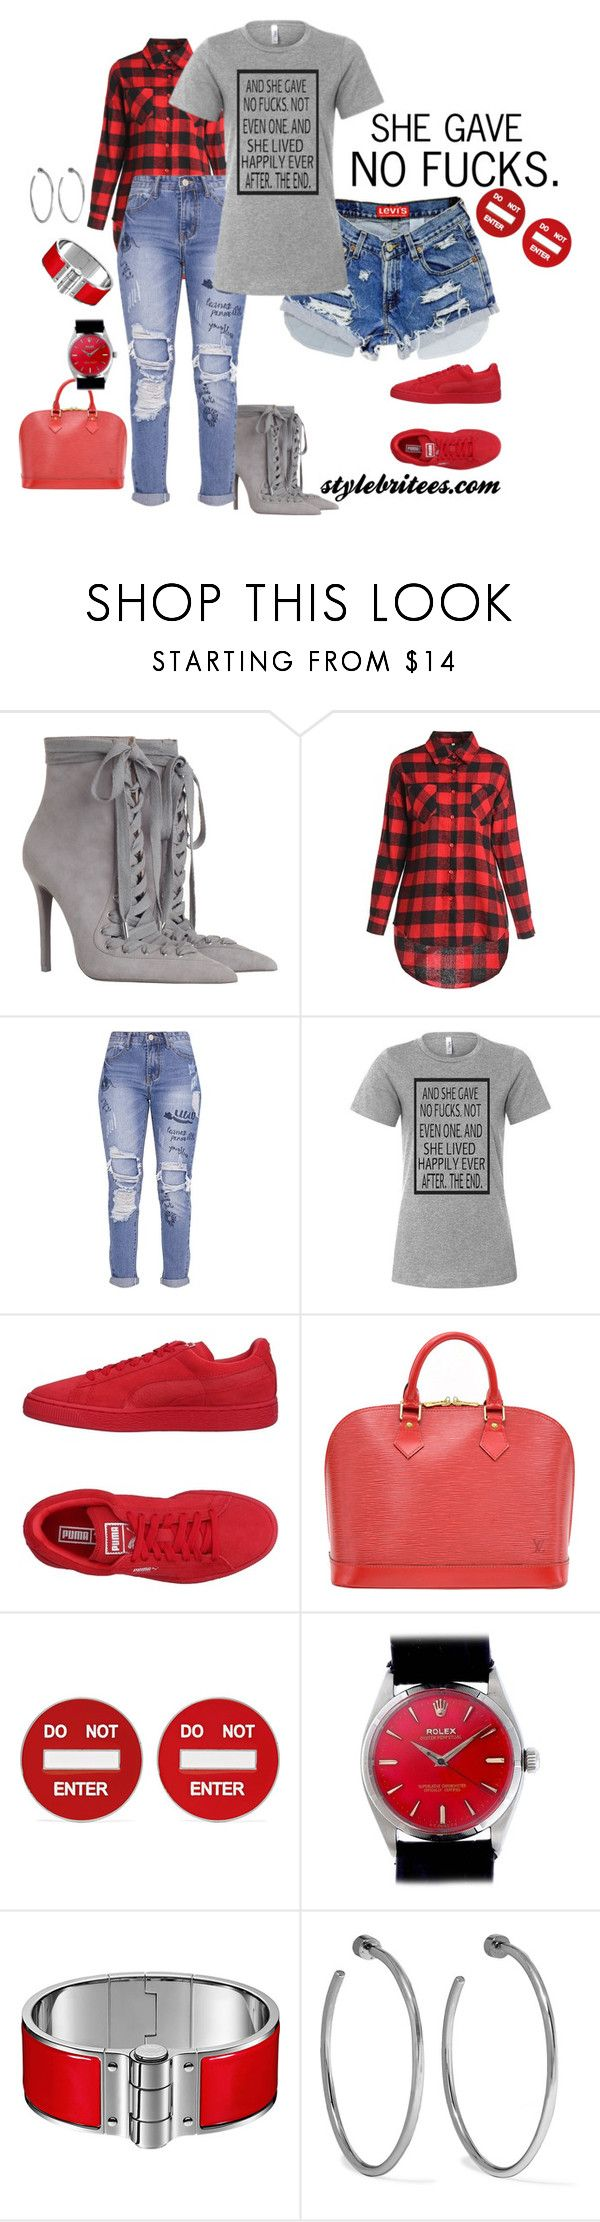 """""""SHE GAVE NO FCKS"""" by stylebritees on Polyvore featuring Zimmermann, Levi's, Puma, Louis Vuitton, Moschino, Rolex and Jennifer Fisher"""